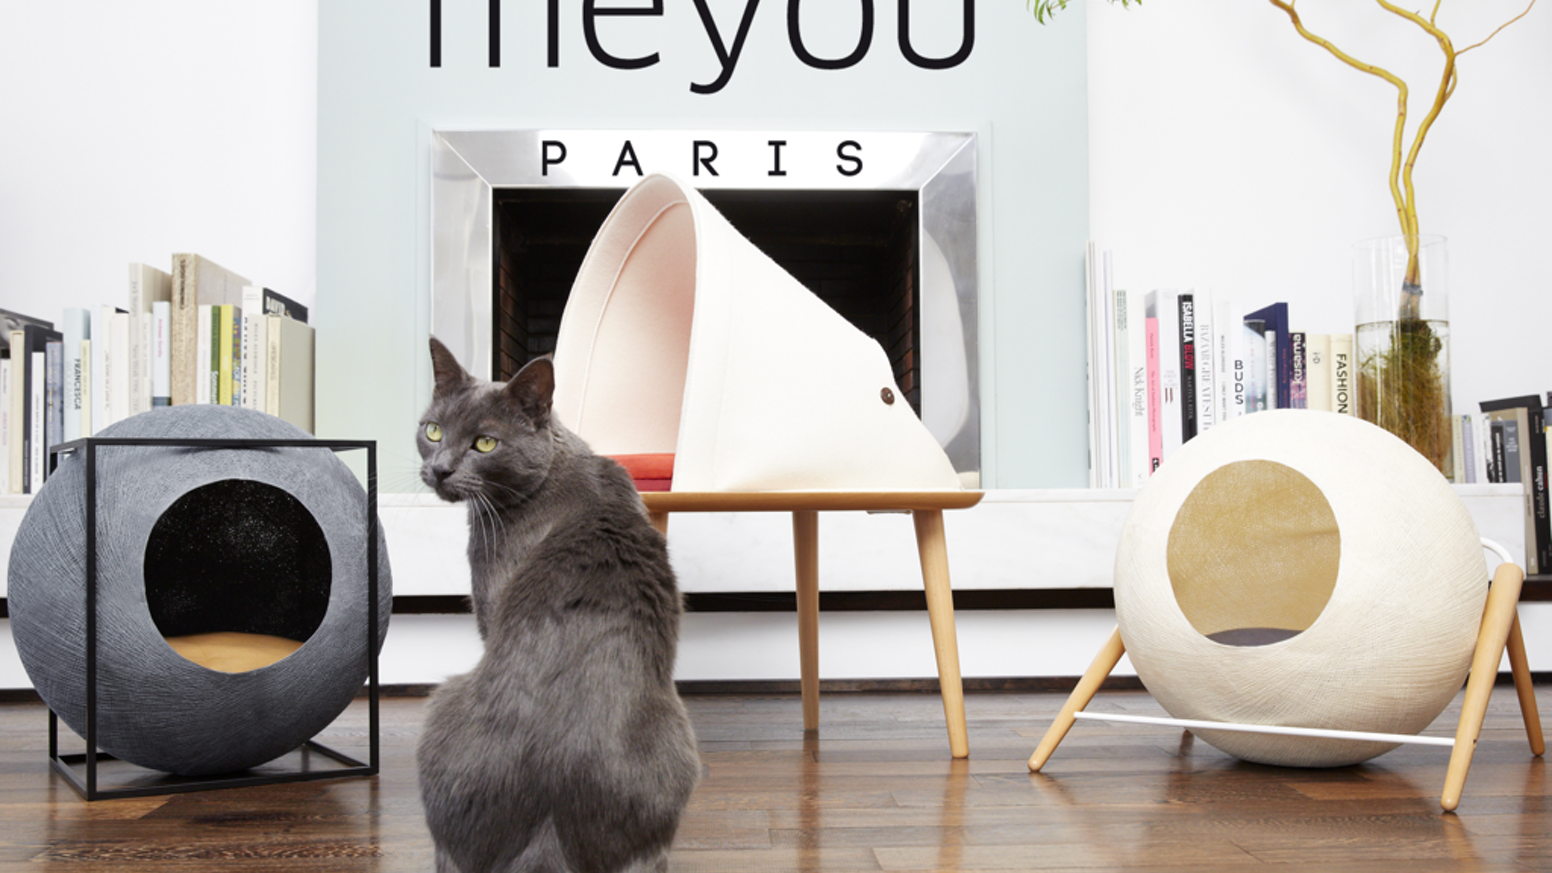 Meyou is reconciling our cat's needs with our design expectations.